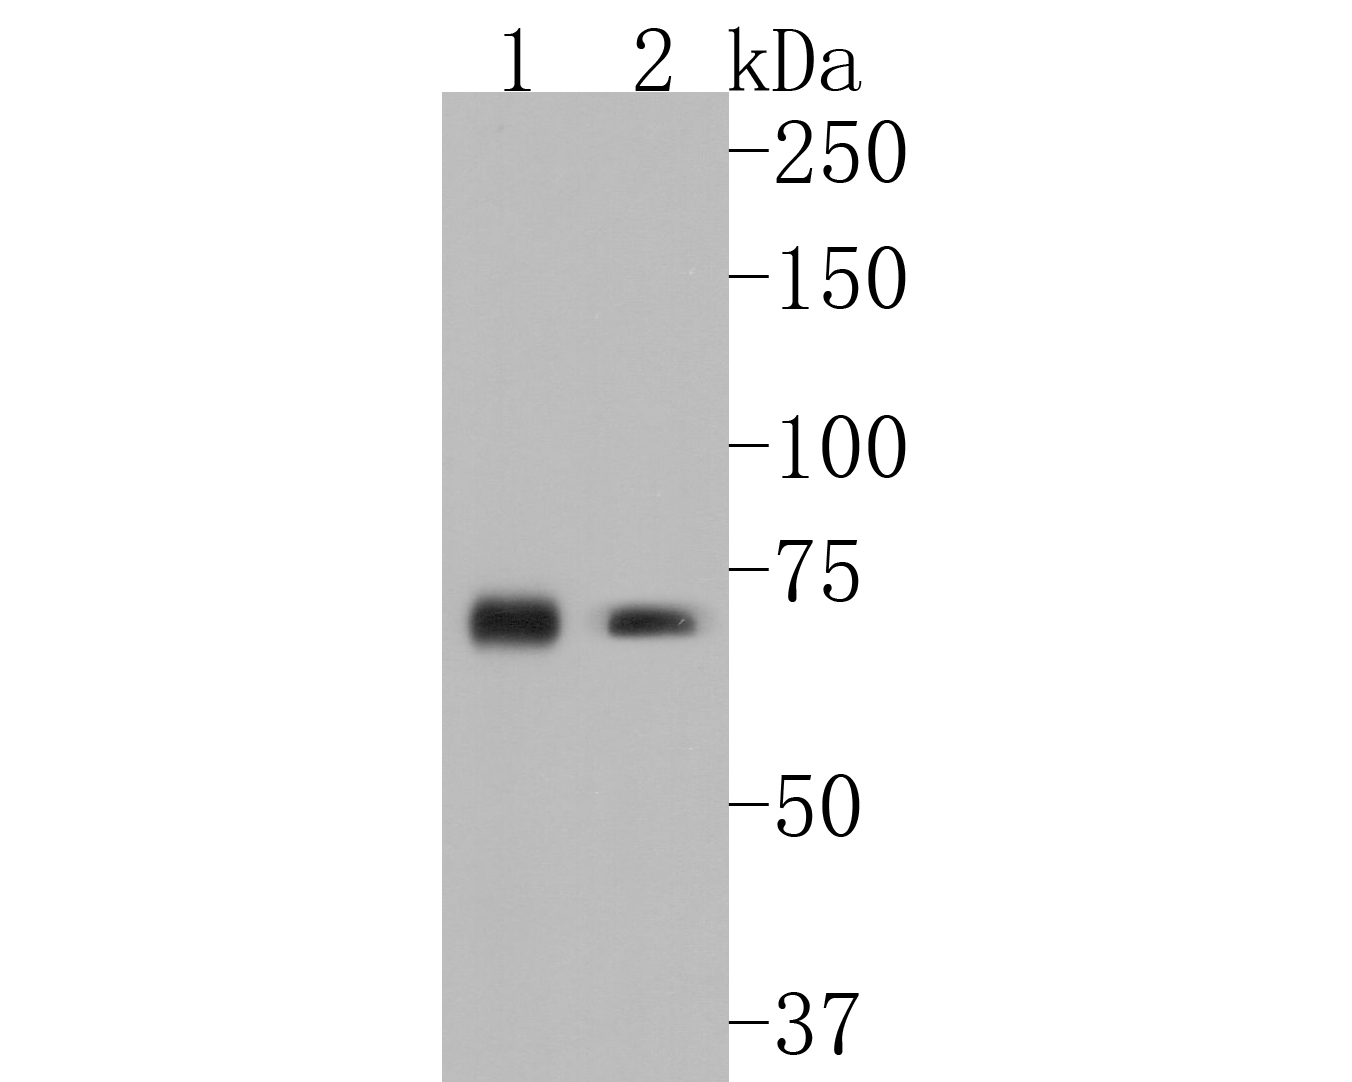 Western blot analysis of CD39 on different lysates. Proteins were transferred to a PVDF membrane and blocked with 5% BSA in PBS for 1 hour at room temperature. The primary antibody (ET1704-74, 1/500) was used in 5% BSA at room temperature for 2 hours. Goat Anti-Rabbit IgG - HRP Secondary Antibody (HA1001) at 1:5,000 dilution was used for 1 hour at room temperature.<br /> Positive control: <br /> Lane 1: mouse heart tissue lysate<br /> Lane 2: mouse spleen tissue lysate